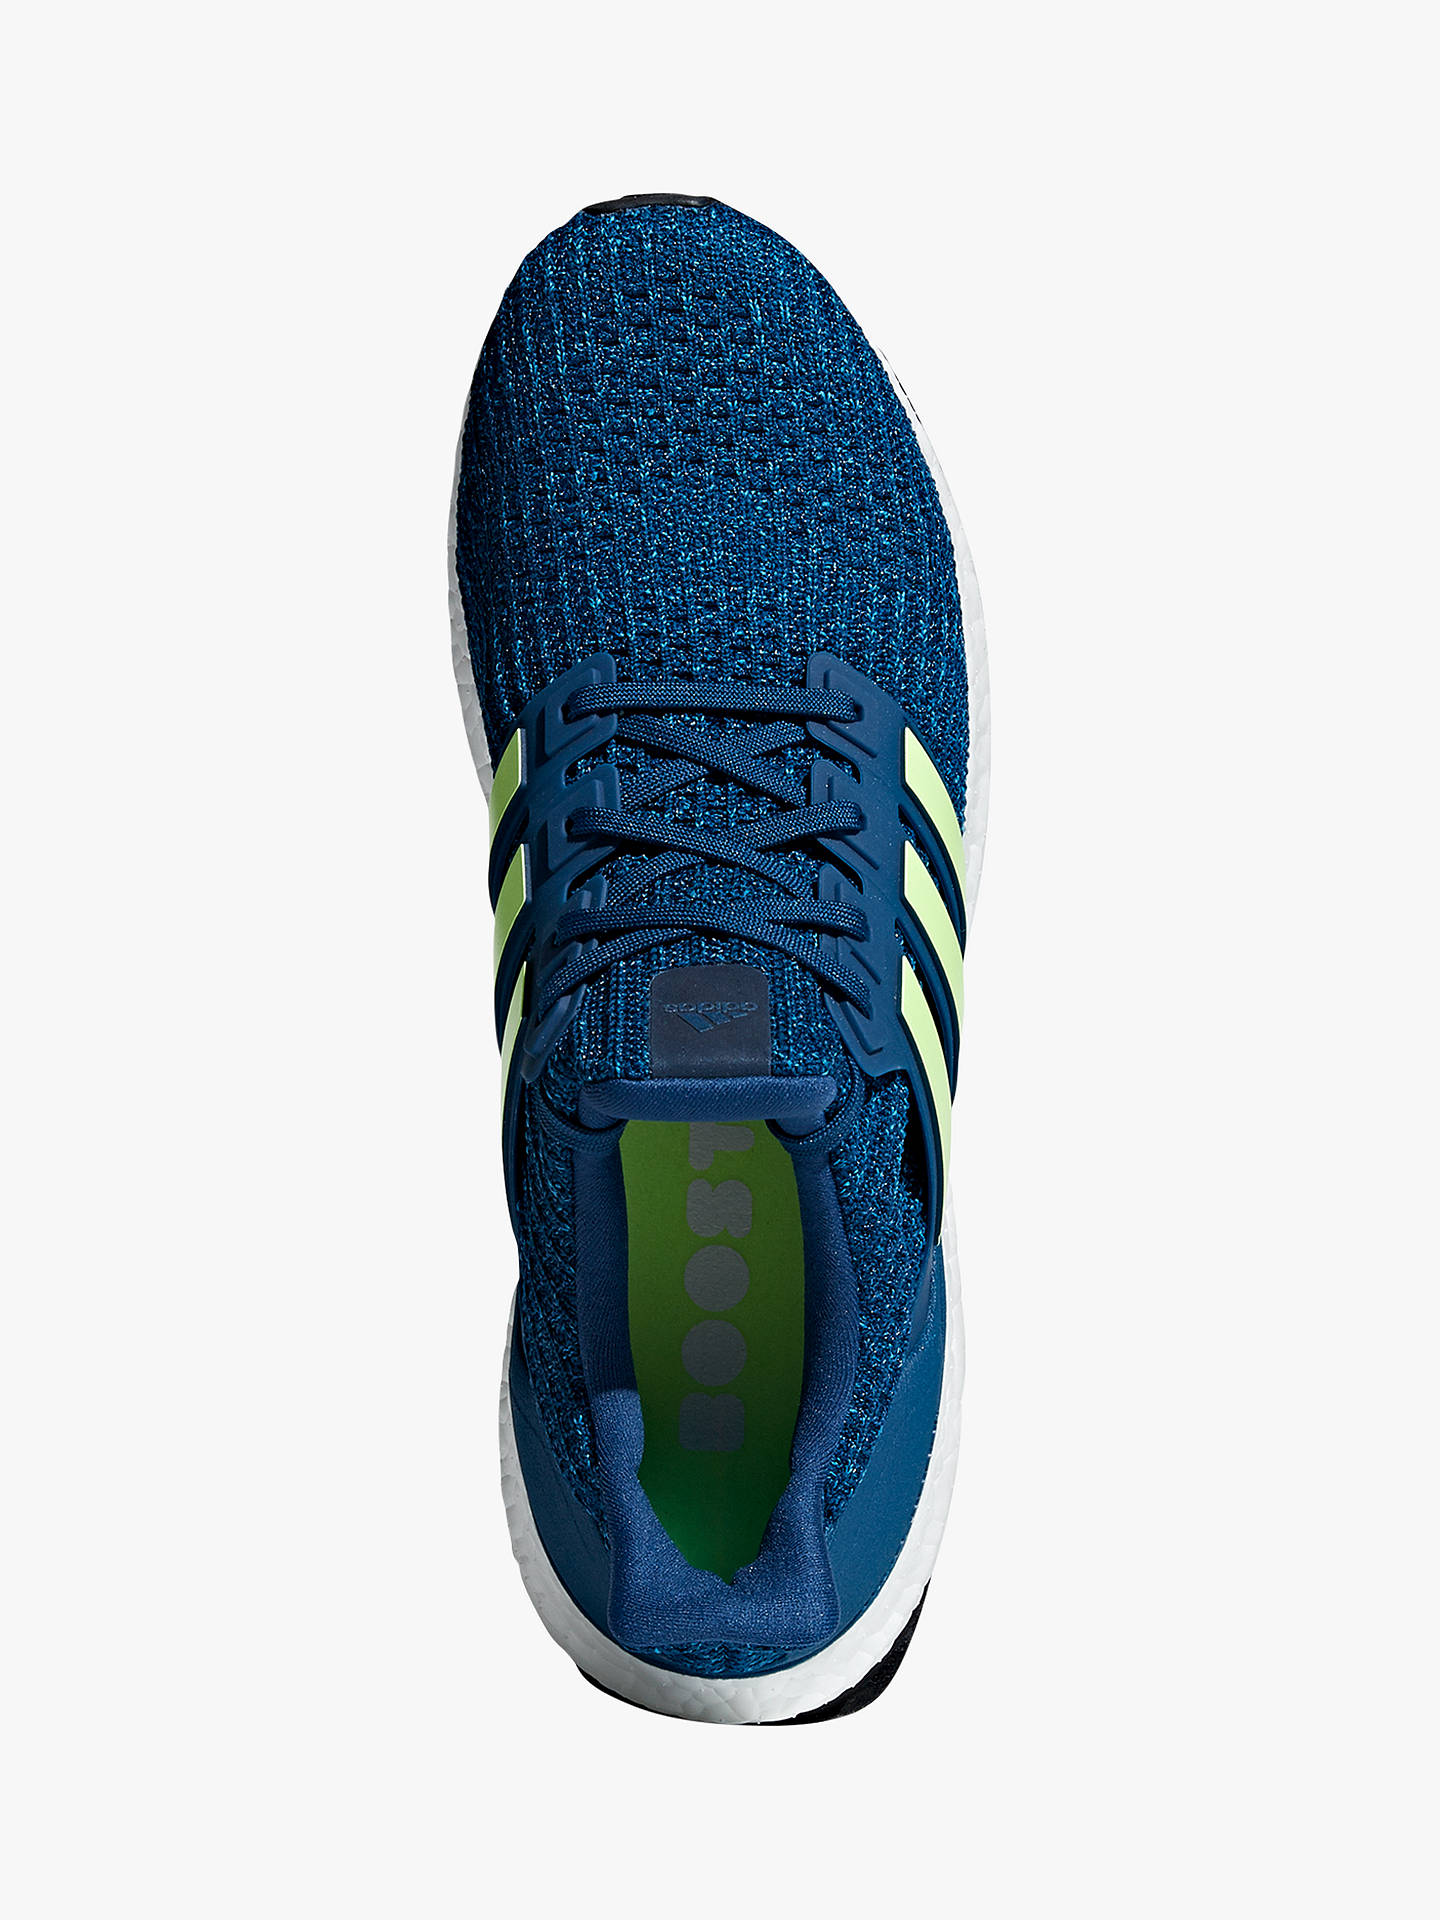 59efa3e13 adidas UltraBOOST Men s Running Shoes at John Lewis   Partners